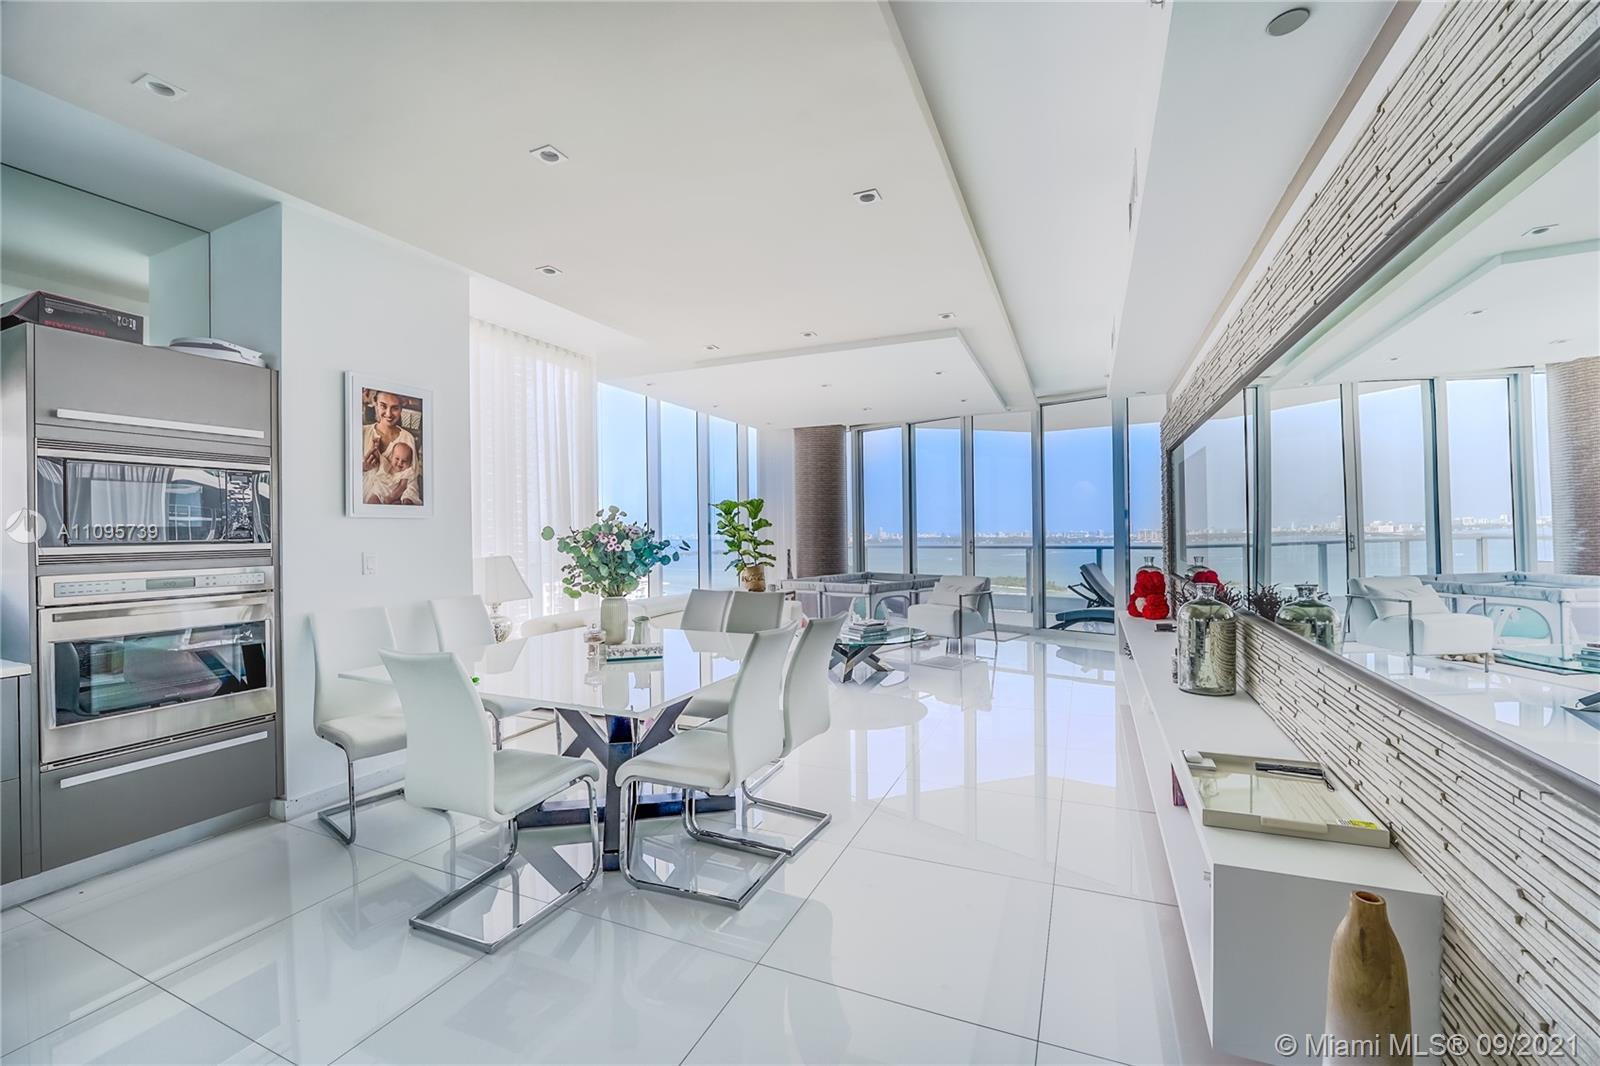 EXCEEDING ALL OF YOUR EXPECTATIONS!THIS MAGNIFICENT 2 BED/2.5 BATH CONDO IS FURNISHED BY ARTEFACTO'S